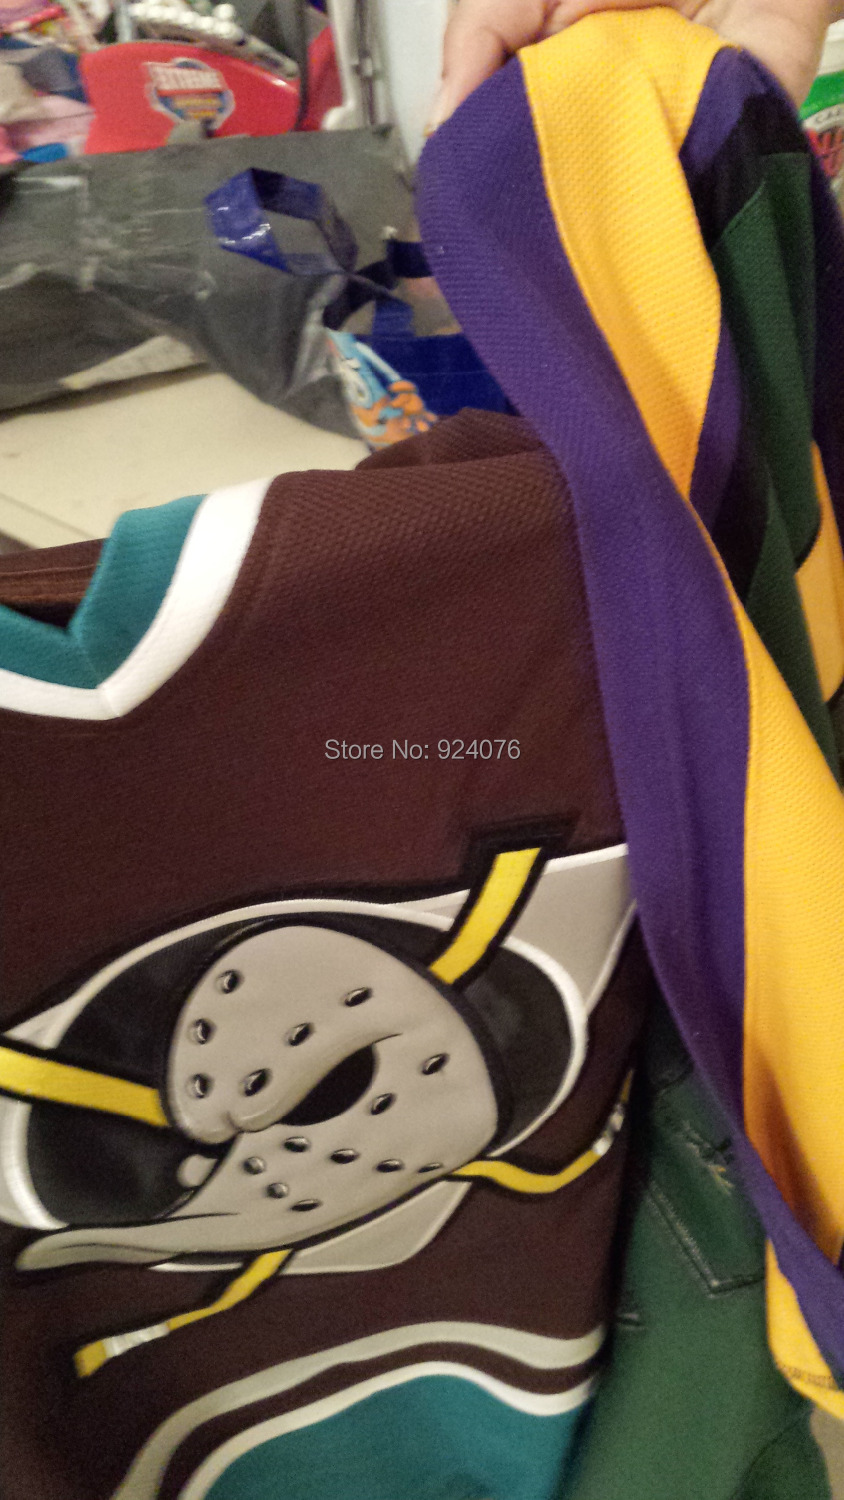 Cheap ICE Hockey Anaheim Mighty Ducks Jersey Purple Teal VTG Authentic Jerseys, Any Number, Any Name Sewn On (XXS-6XL)<br><br>Aliexpress